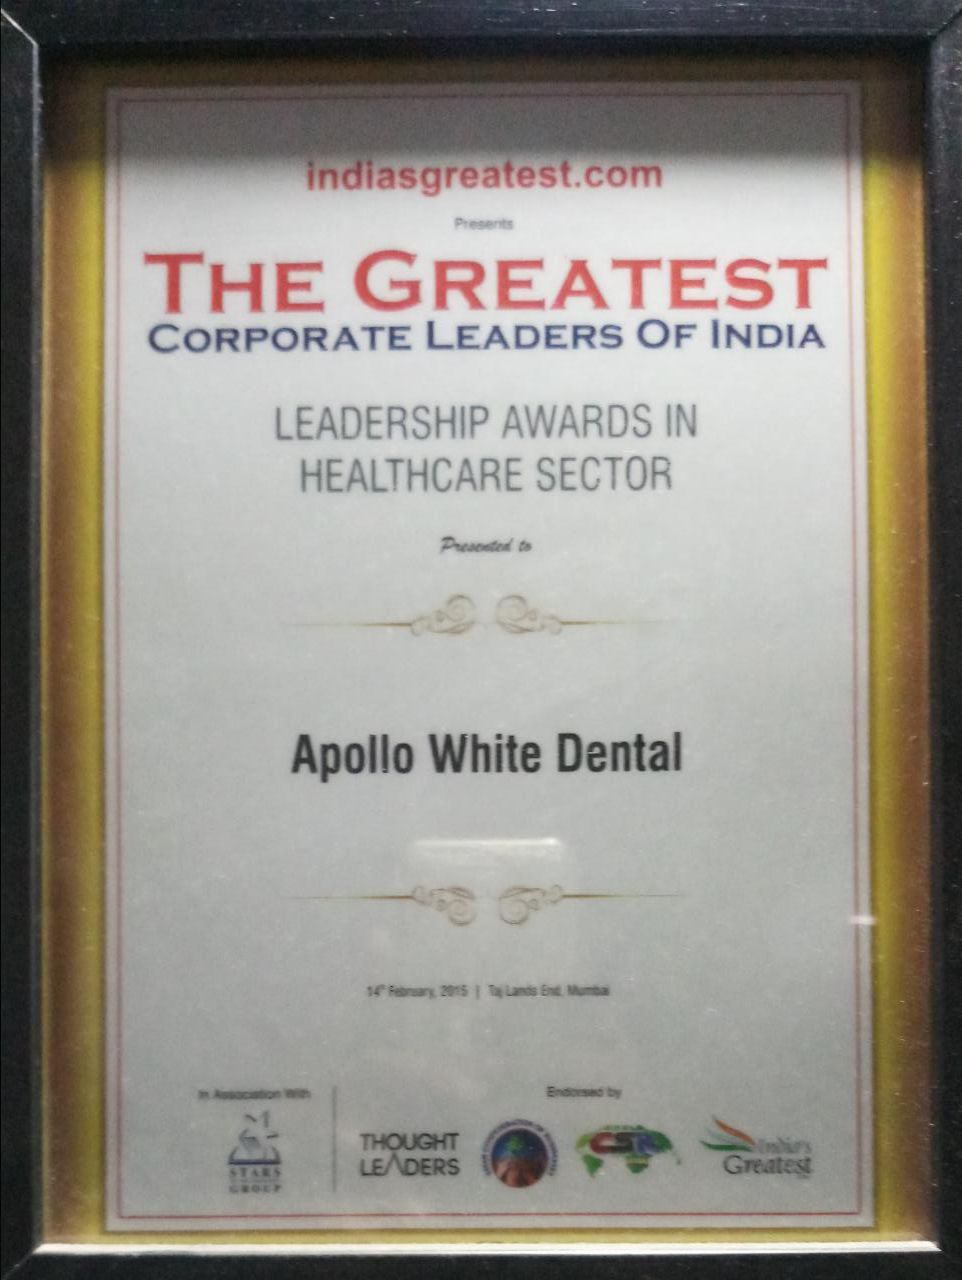 Leadership Award In Healthcare Sector – The Greatest Corporate Leaders Of India 2015